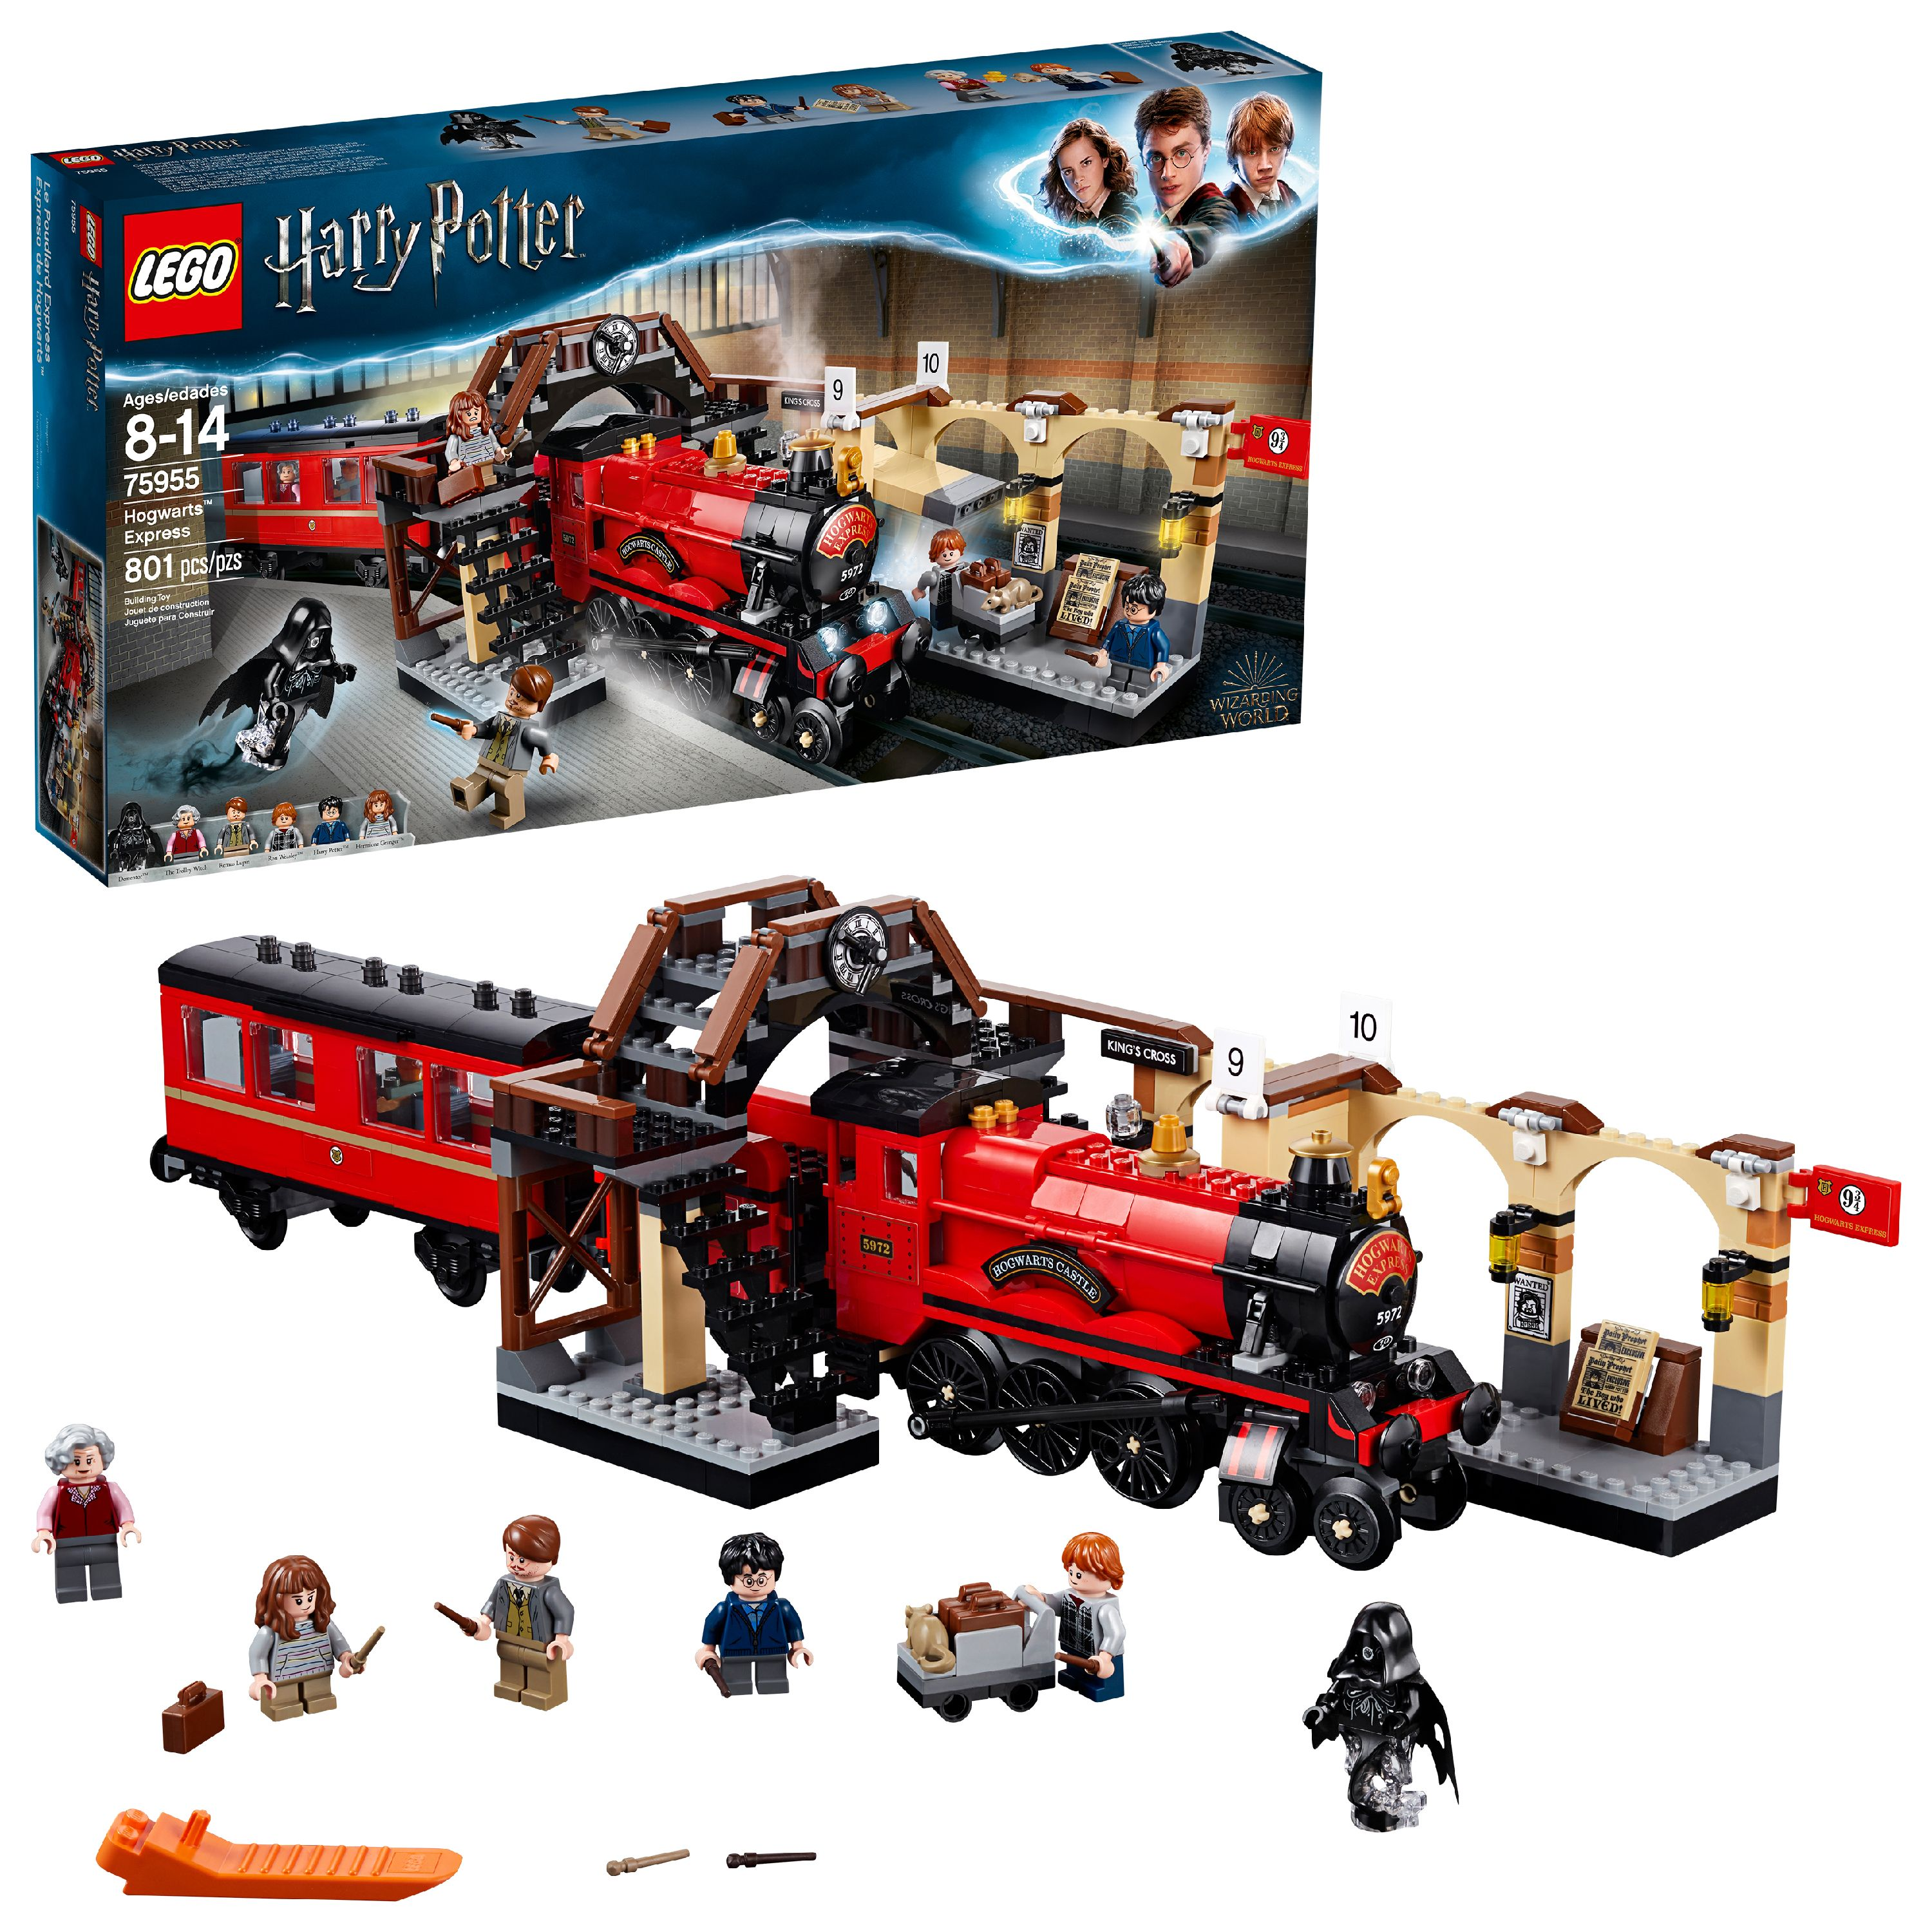 LEGO Harry Potter TM Hogwarts Express 75955 Building Set (801 Pieces)